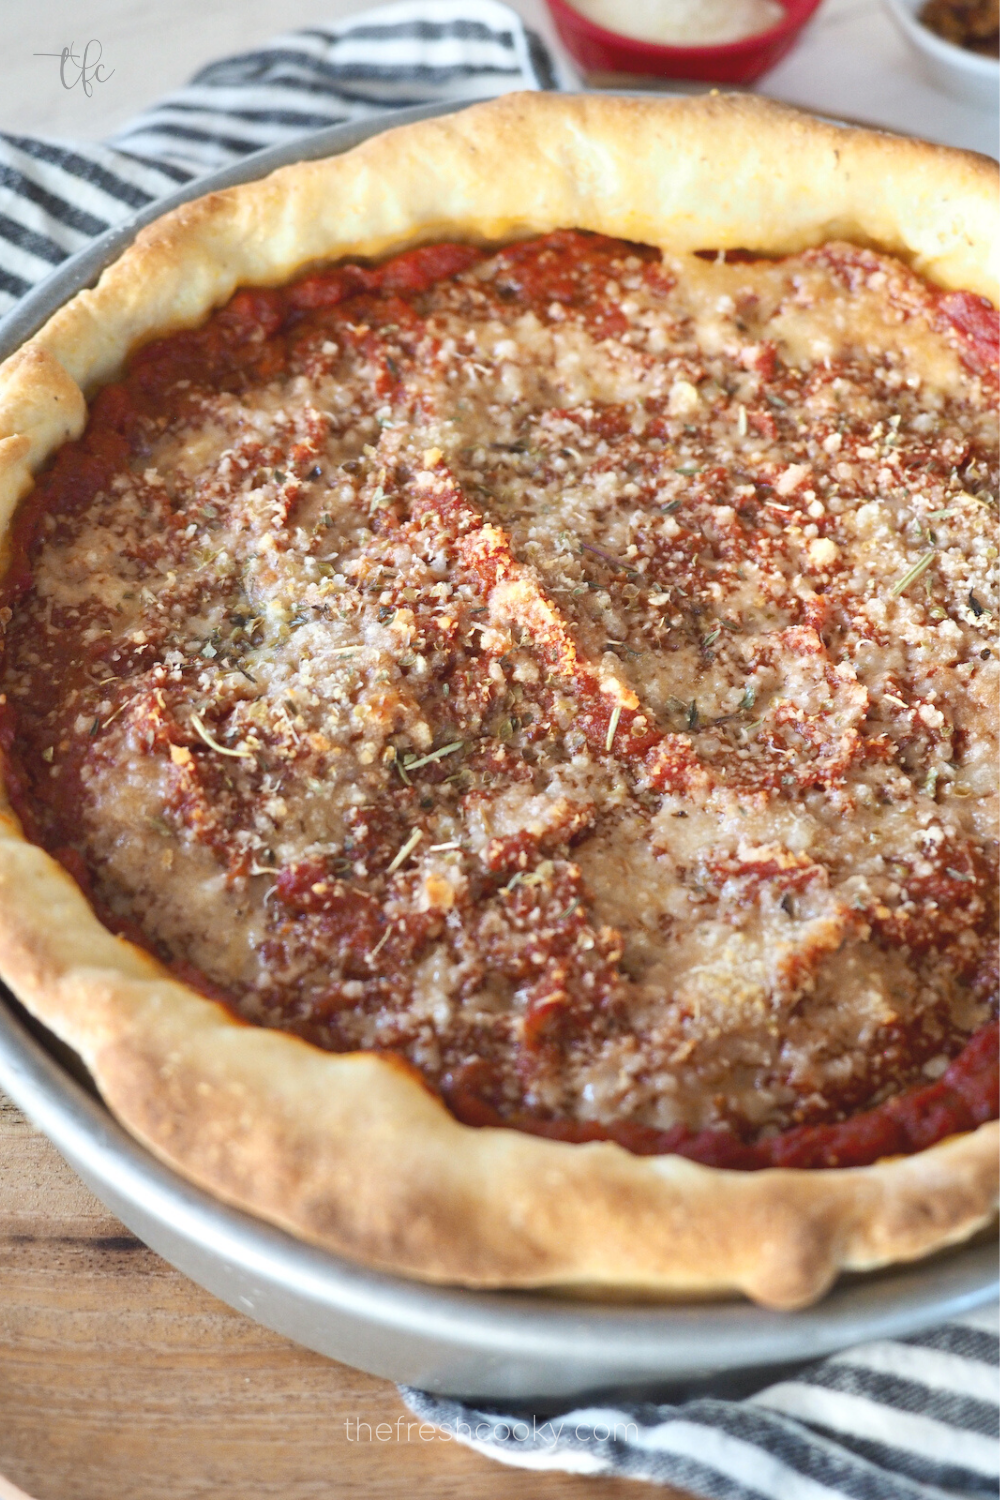 Chicago-Style Deep Dish Pizza in pan after baking with golden crust.